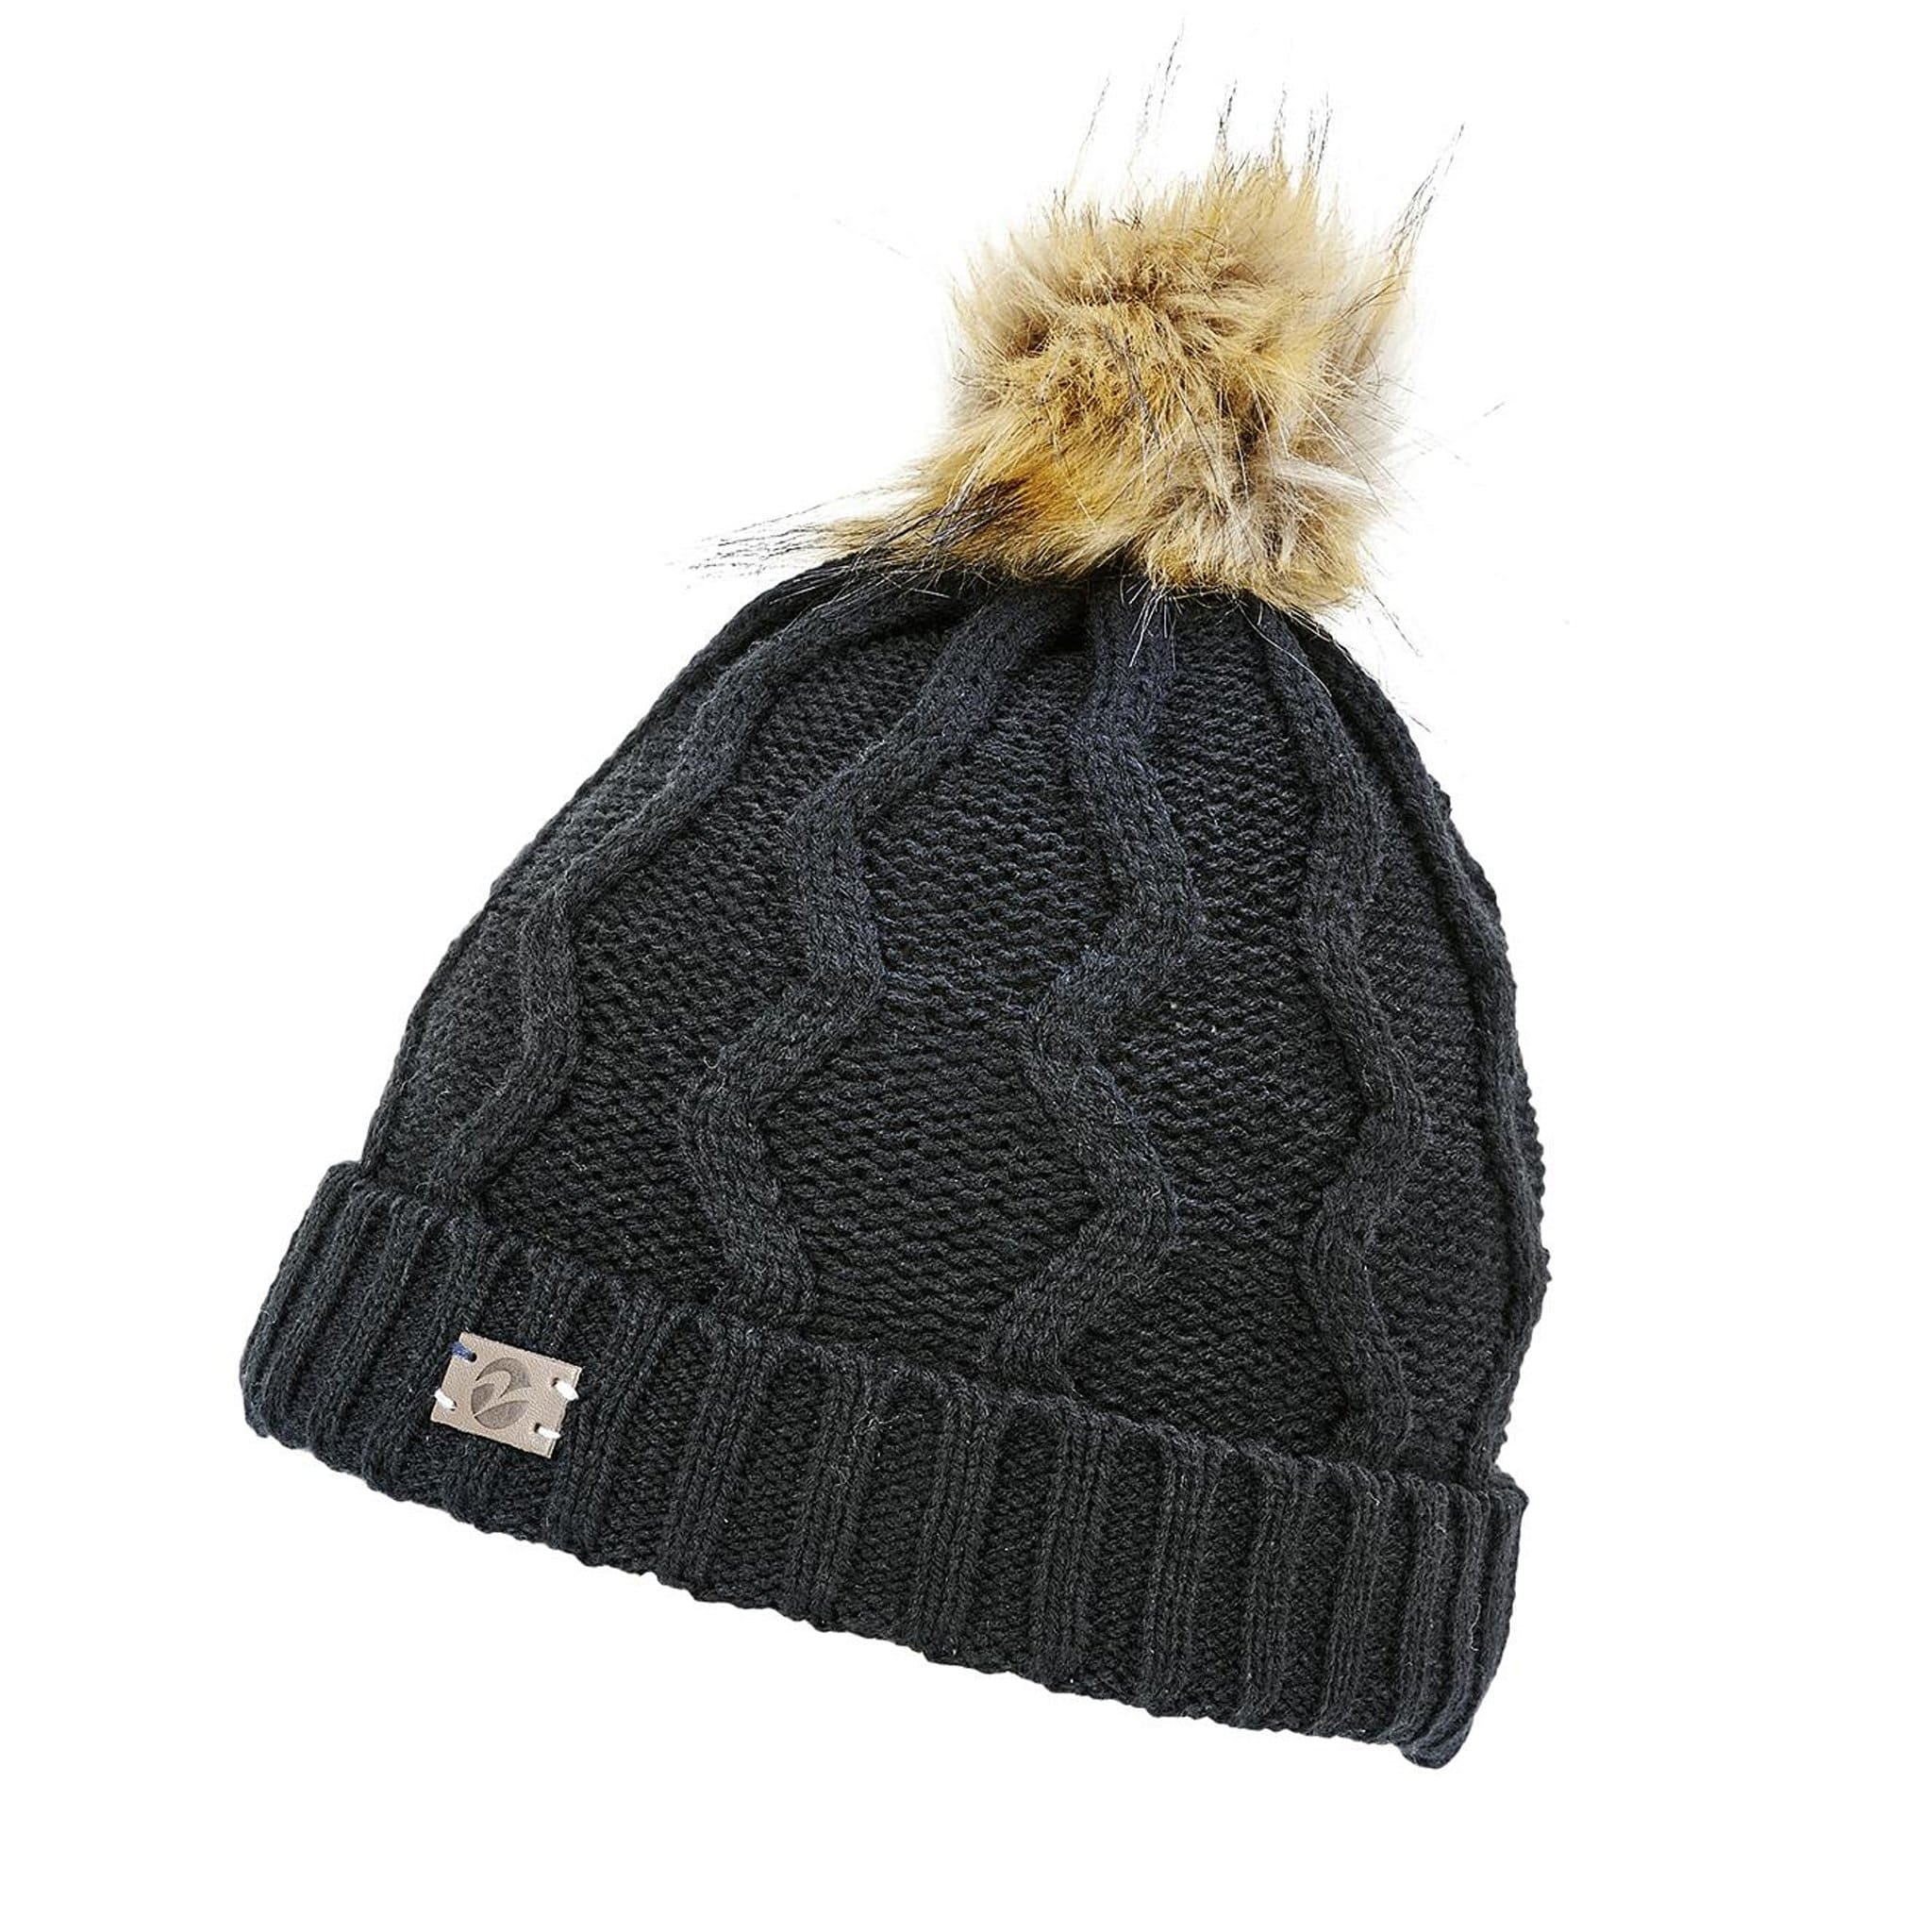 Busse Evolet Knitted Hat Black 71933.